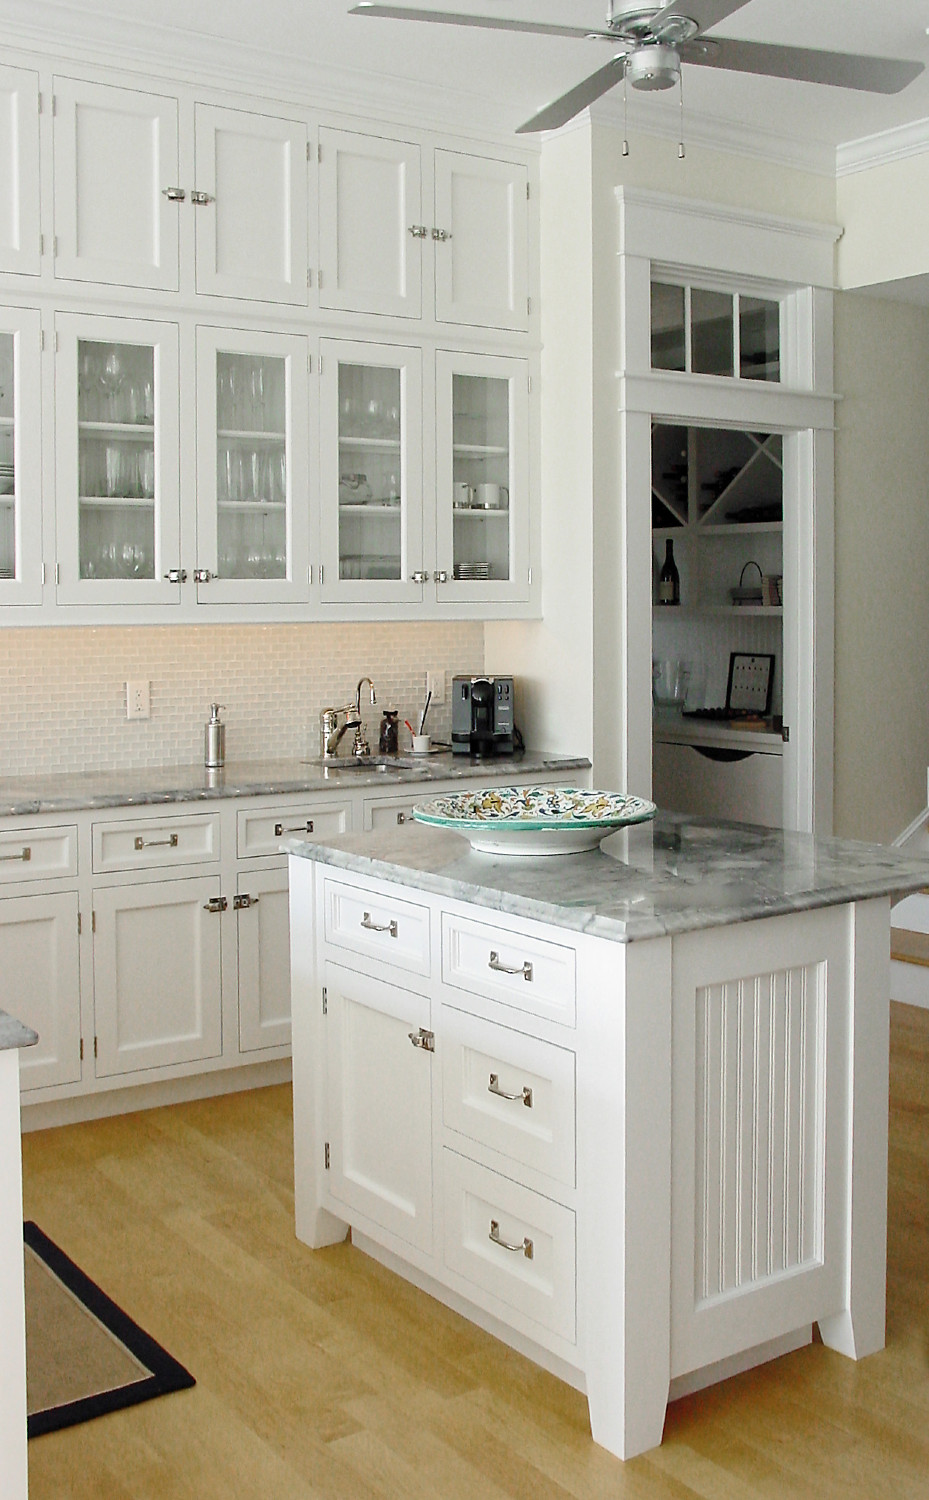 kitchen_6_1500.jpg